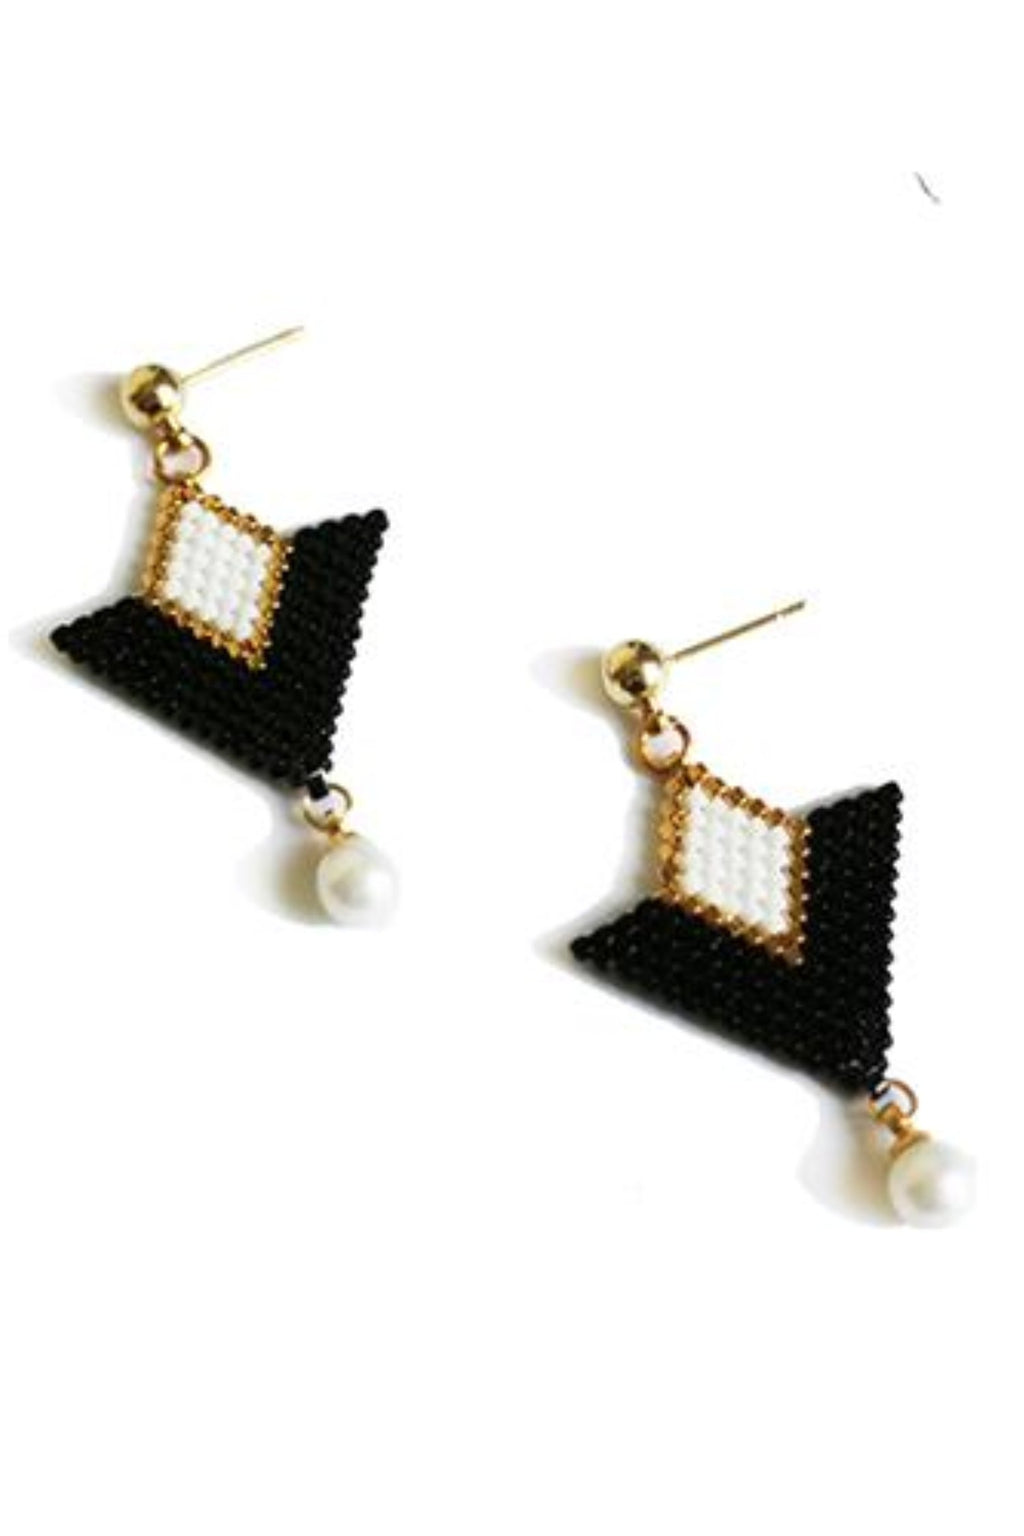 XIU inverted triangle ear-pins with pearls